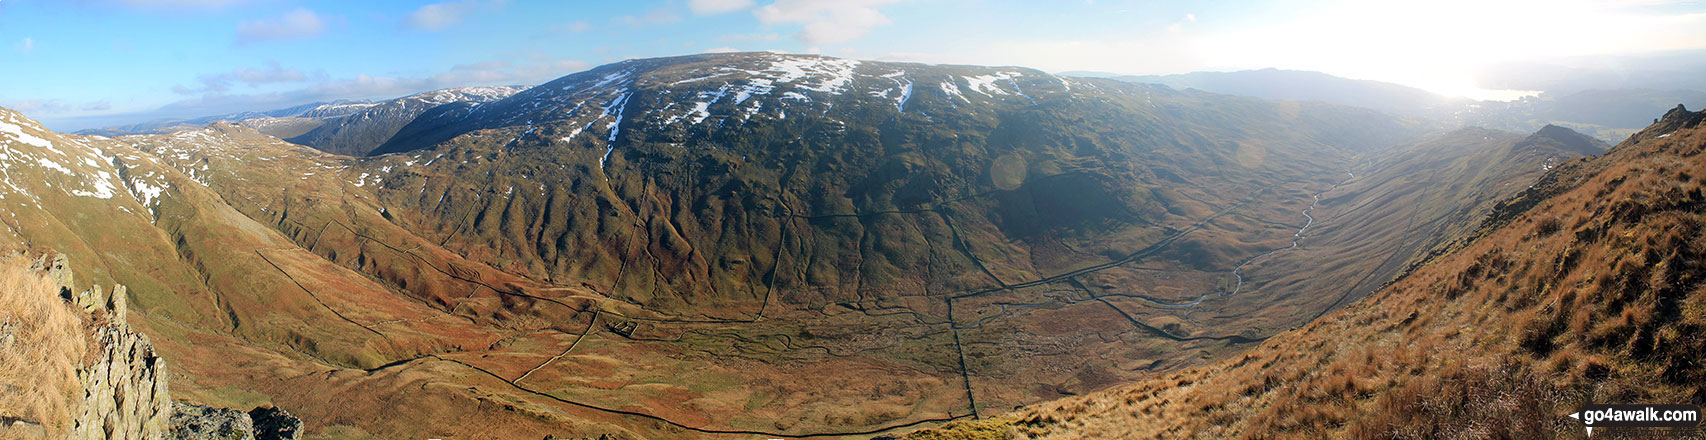 Middle Dodd, Red Screes, Snarker Pike, the Scandale Valley and Lake Windermere from High Pike (Scandale)